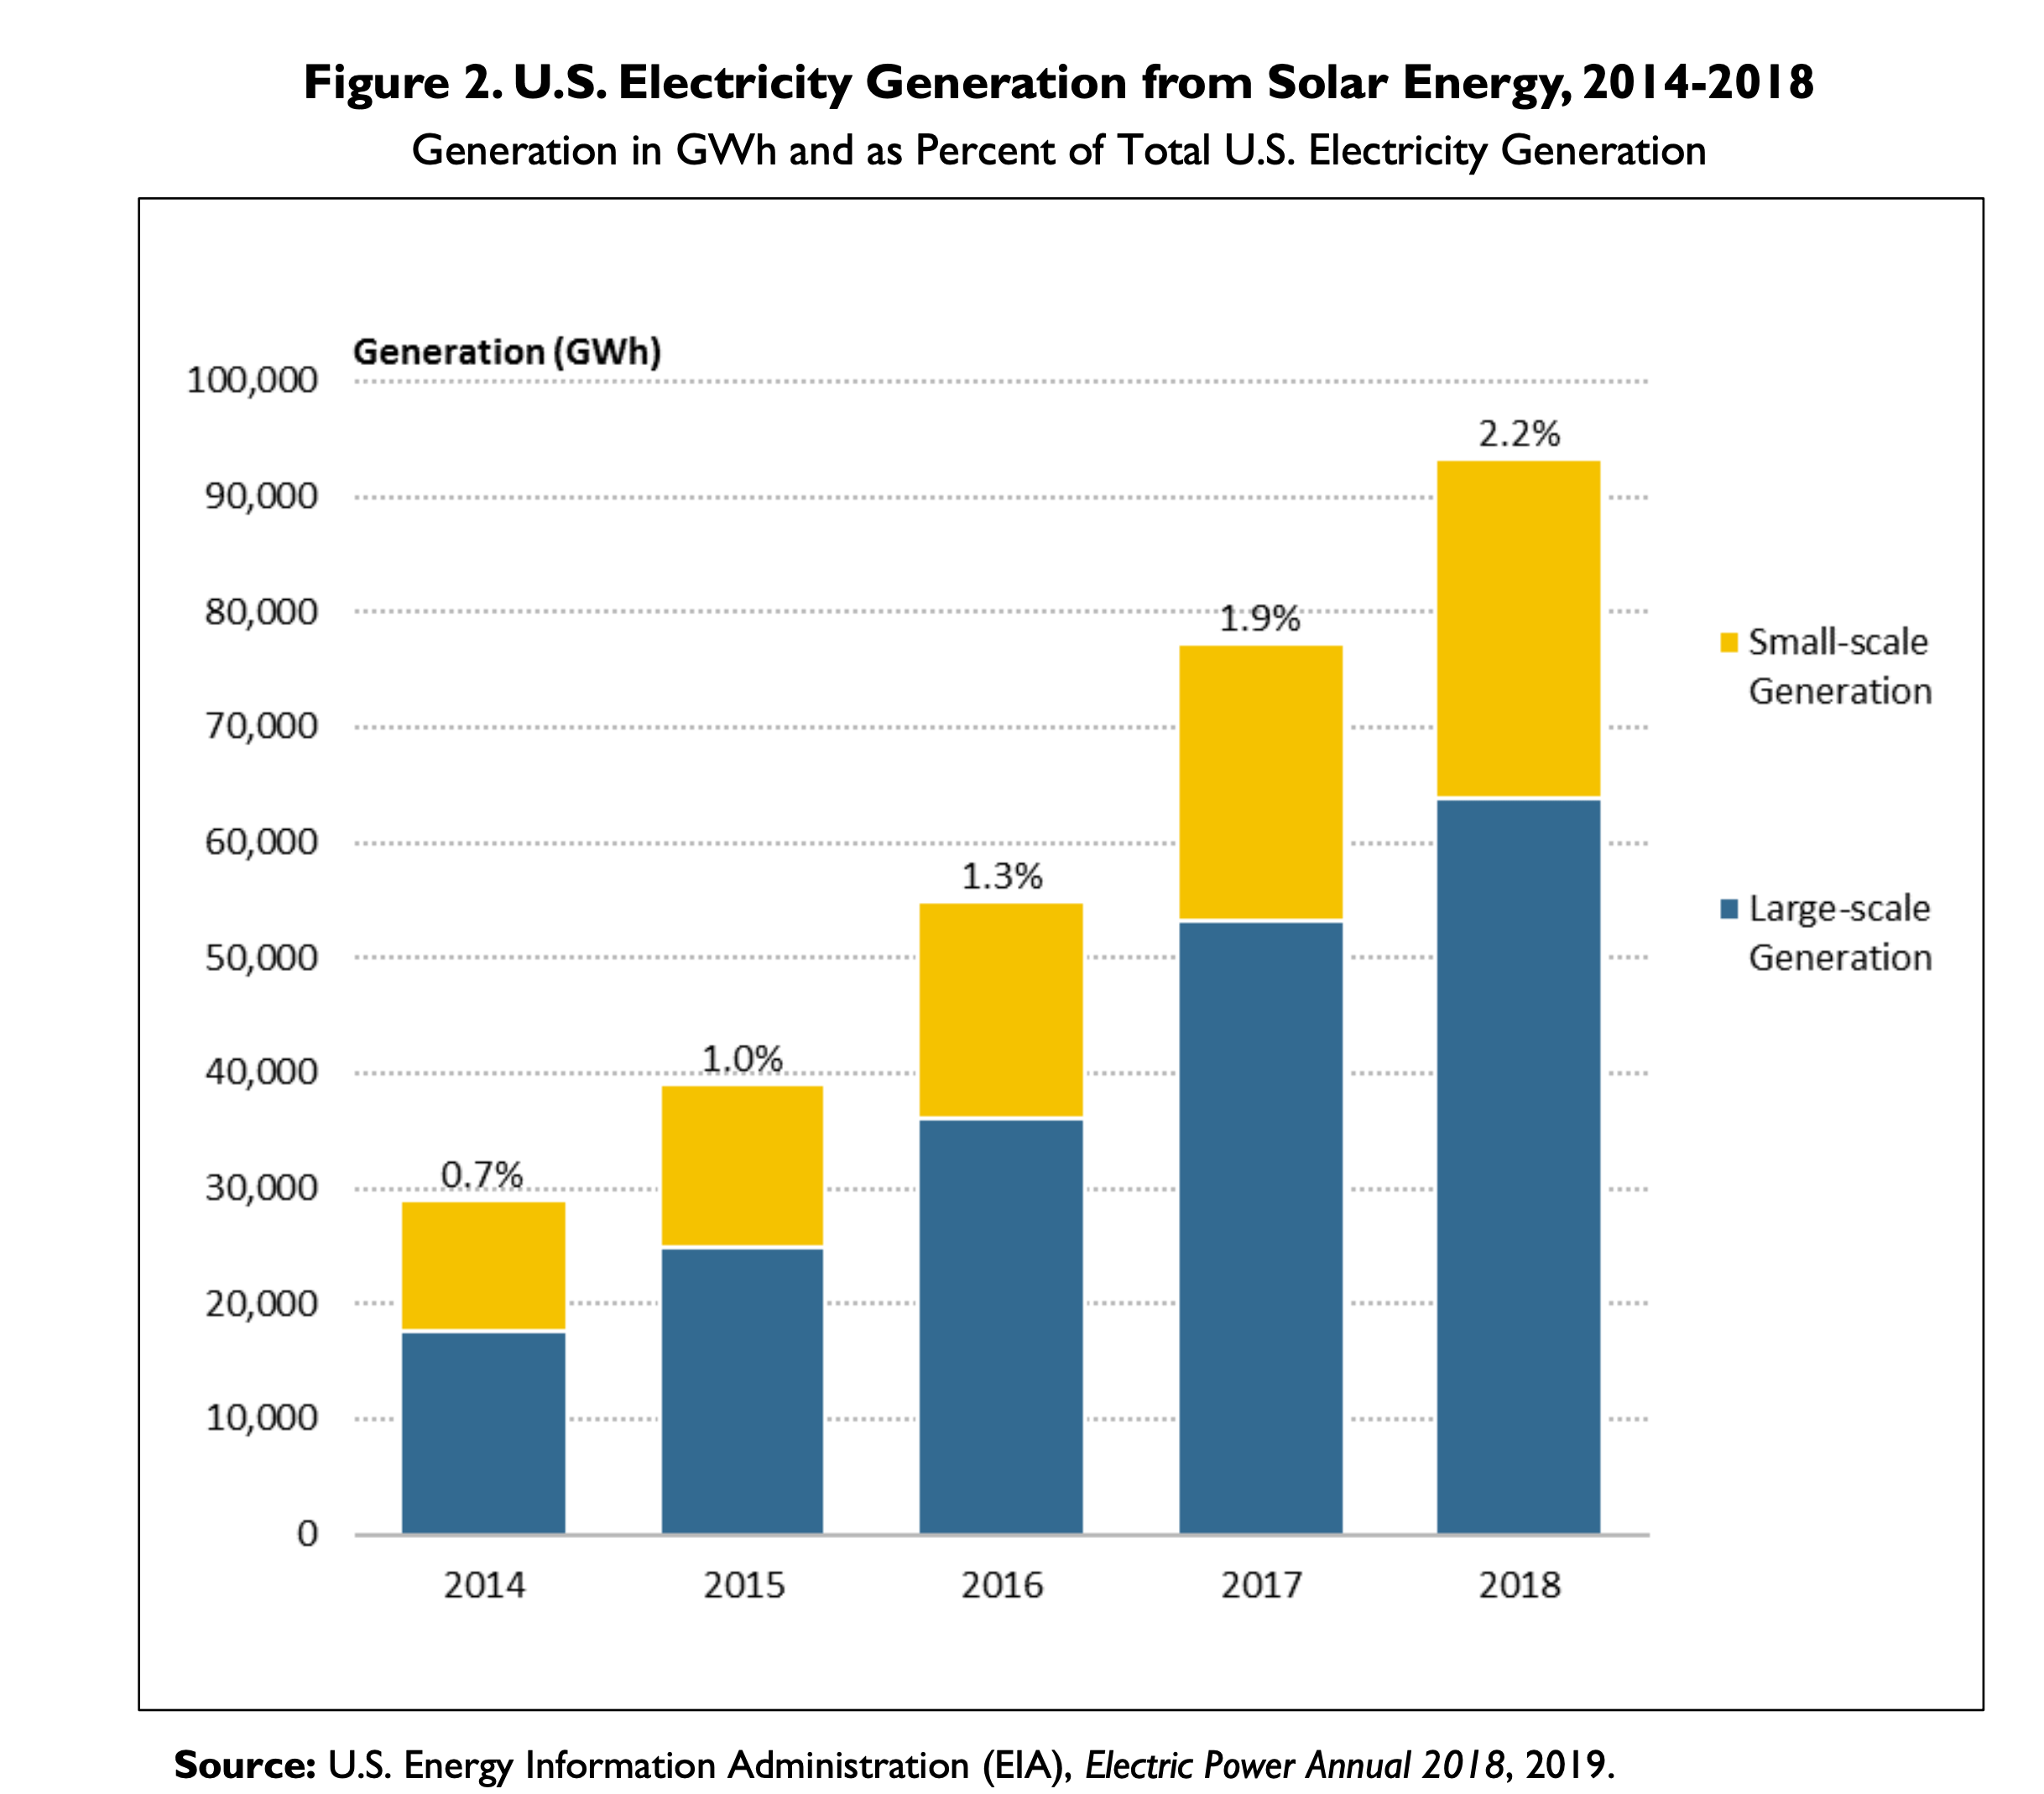 U.S. Electricity Generation from Solar Energy